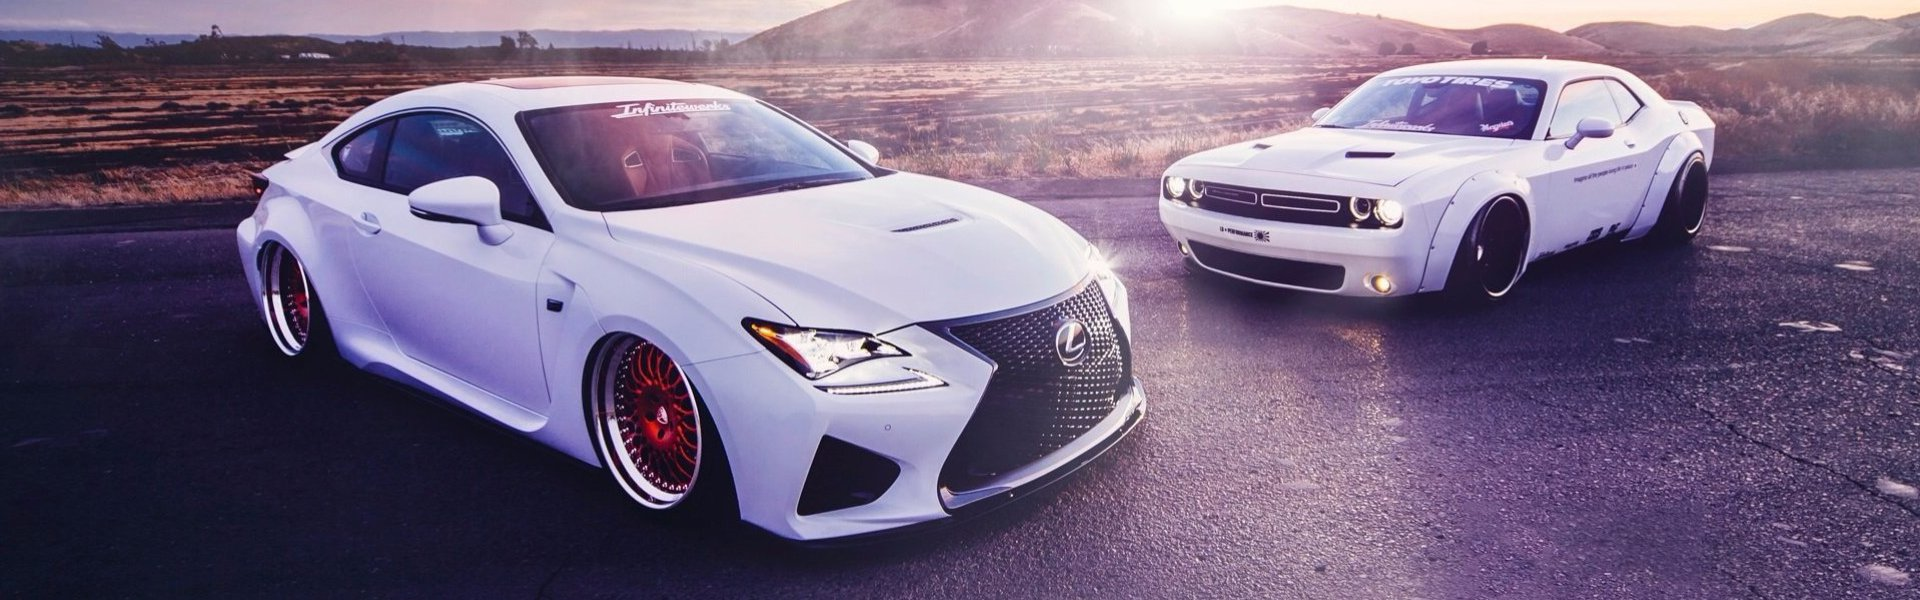 Lexus RC350 & DODGE Challenger Liberty Walk stance-тюнинг